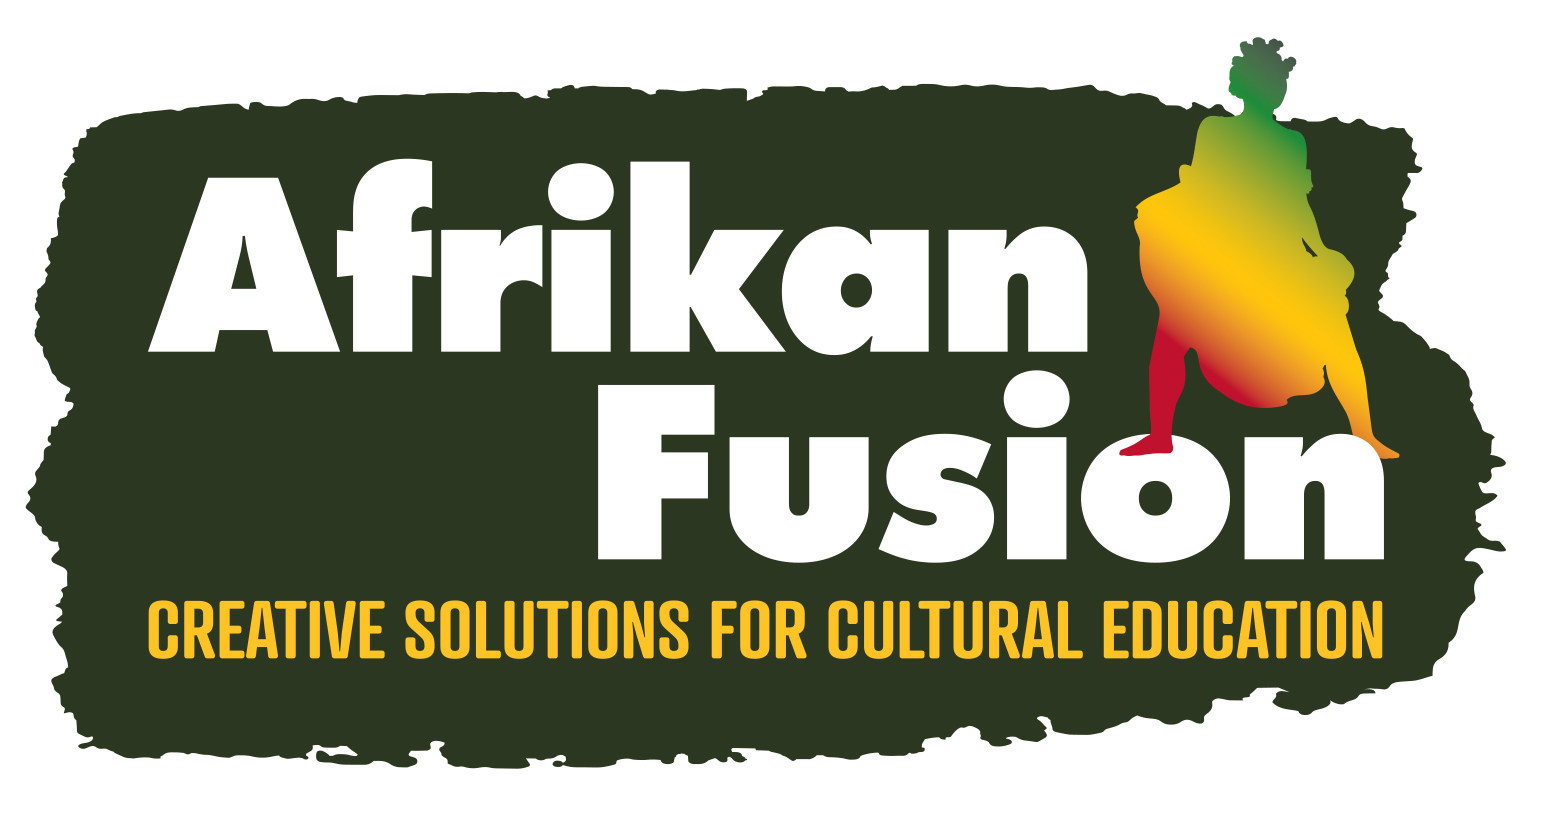 African fusion master logo